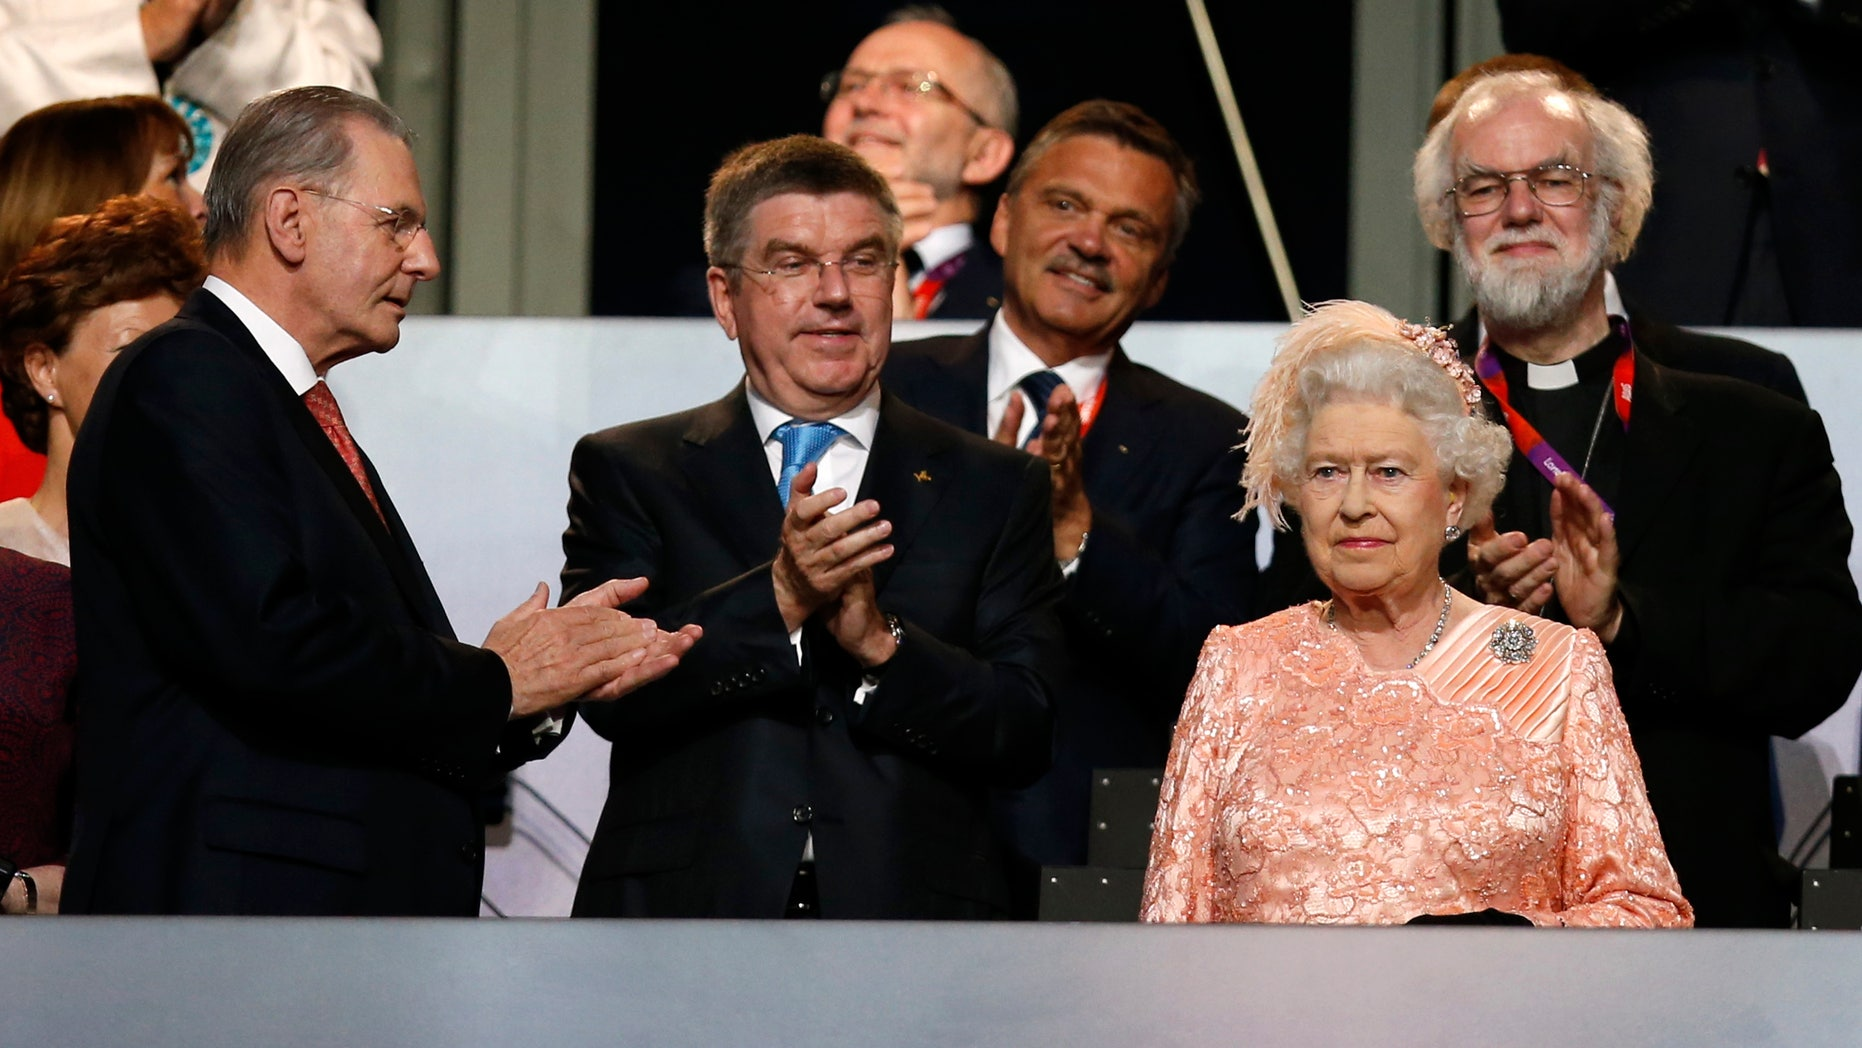 July 27, 2012: Queen Elizabeth II looks at at the 2012 London Olympic Games